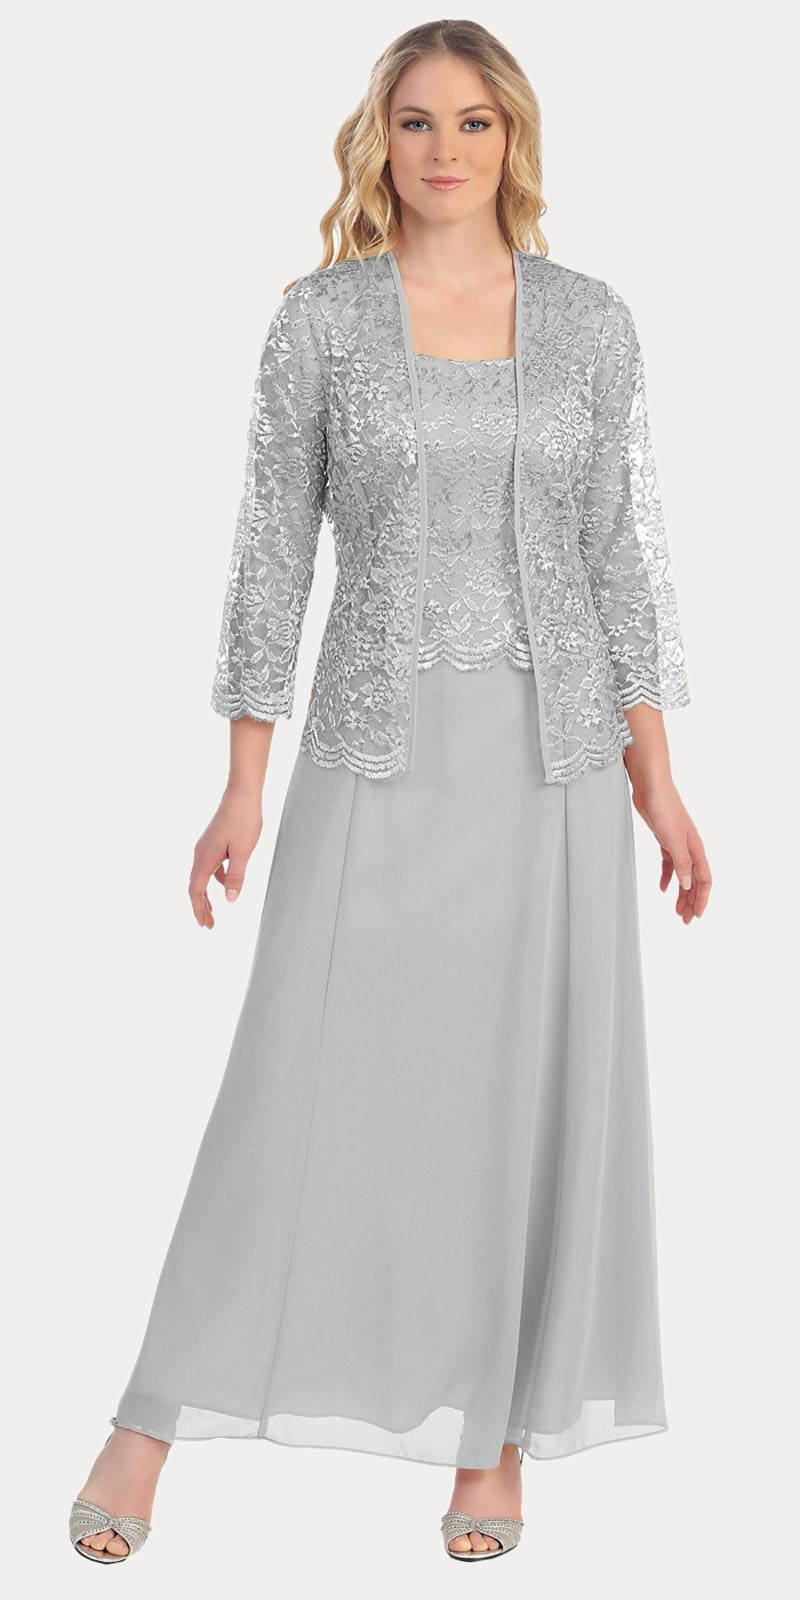 Long Chiffon Silver Mother of Groom Dress Lace 3 4 length Sleeve Jacket 8e49f0199